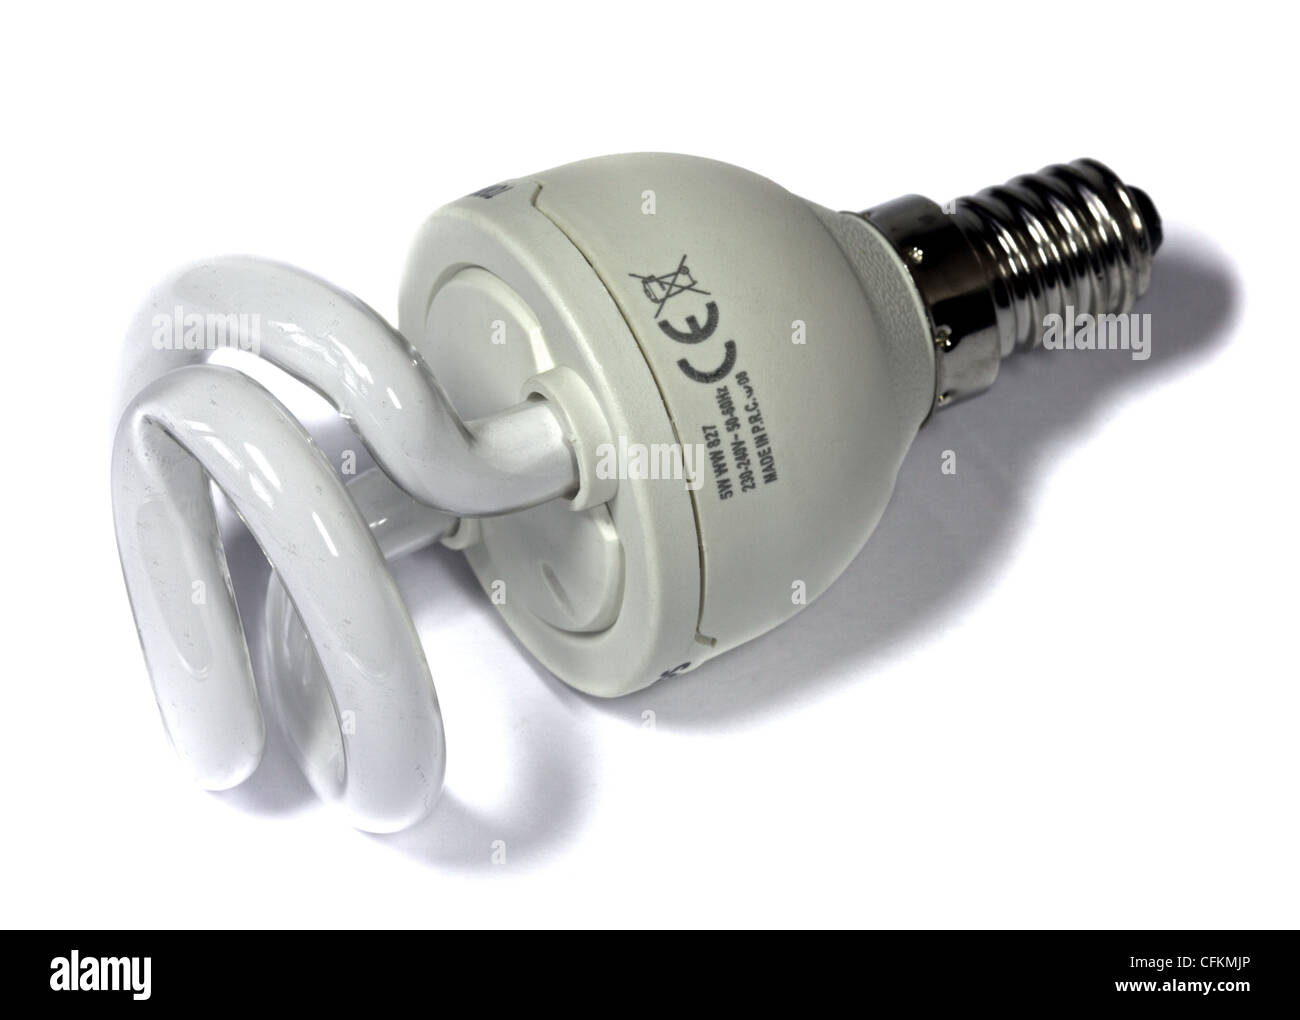 Low Energy Light Bulb - Stock Image  sc 1 st  Alamy & Low Wattage Light Bulb Stock Photos u0026 Low Wattage Light Bulb Stock ...